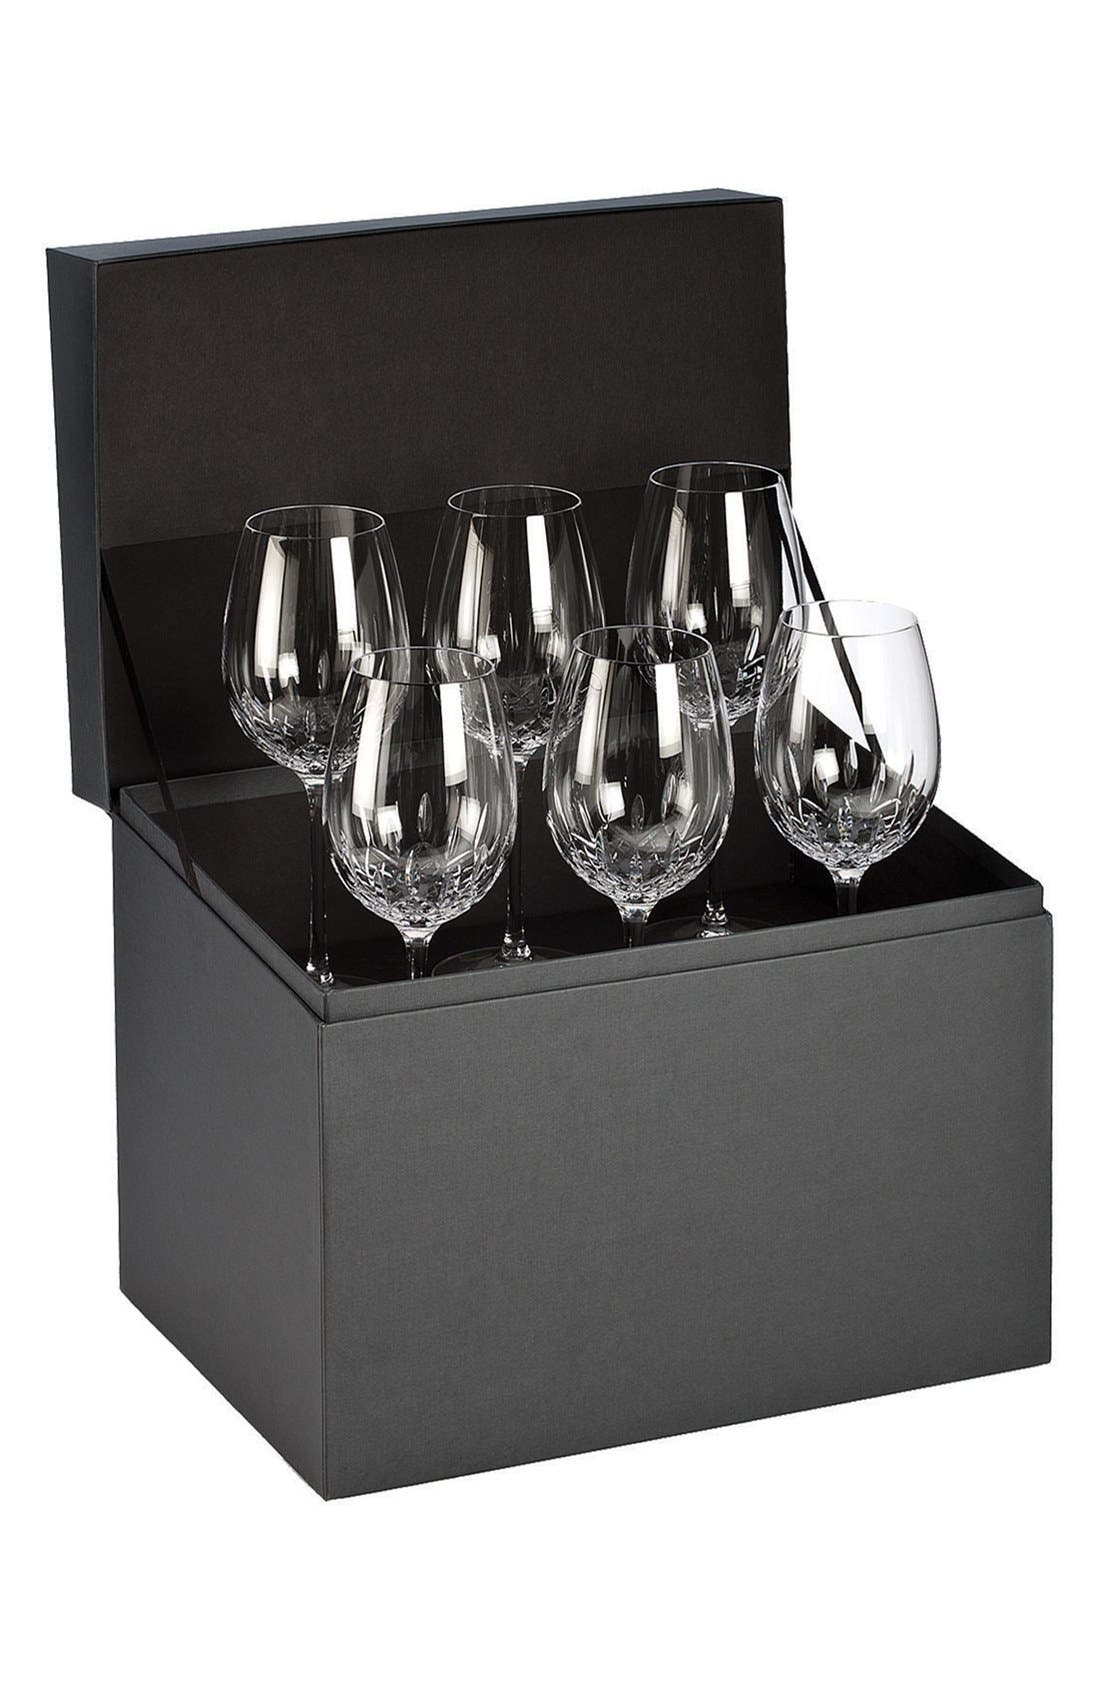 Waterford 'Lismore Essence' Lead Crystal Goblets (Set of 6)